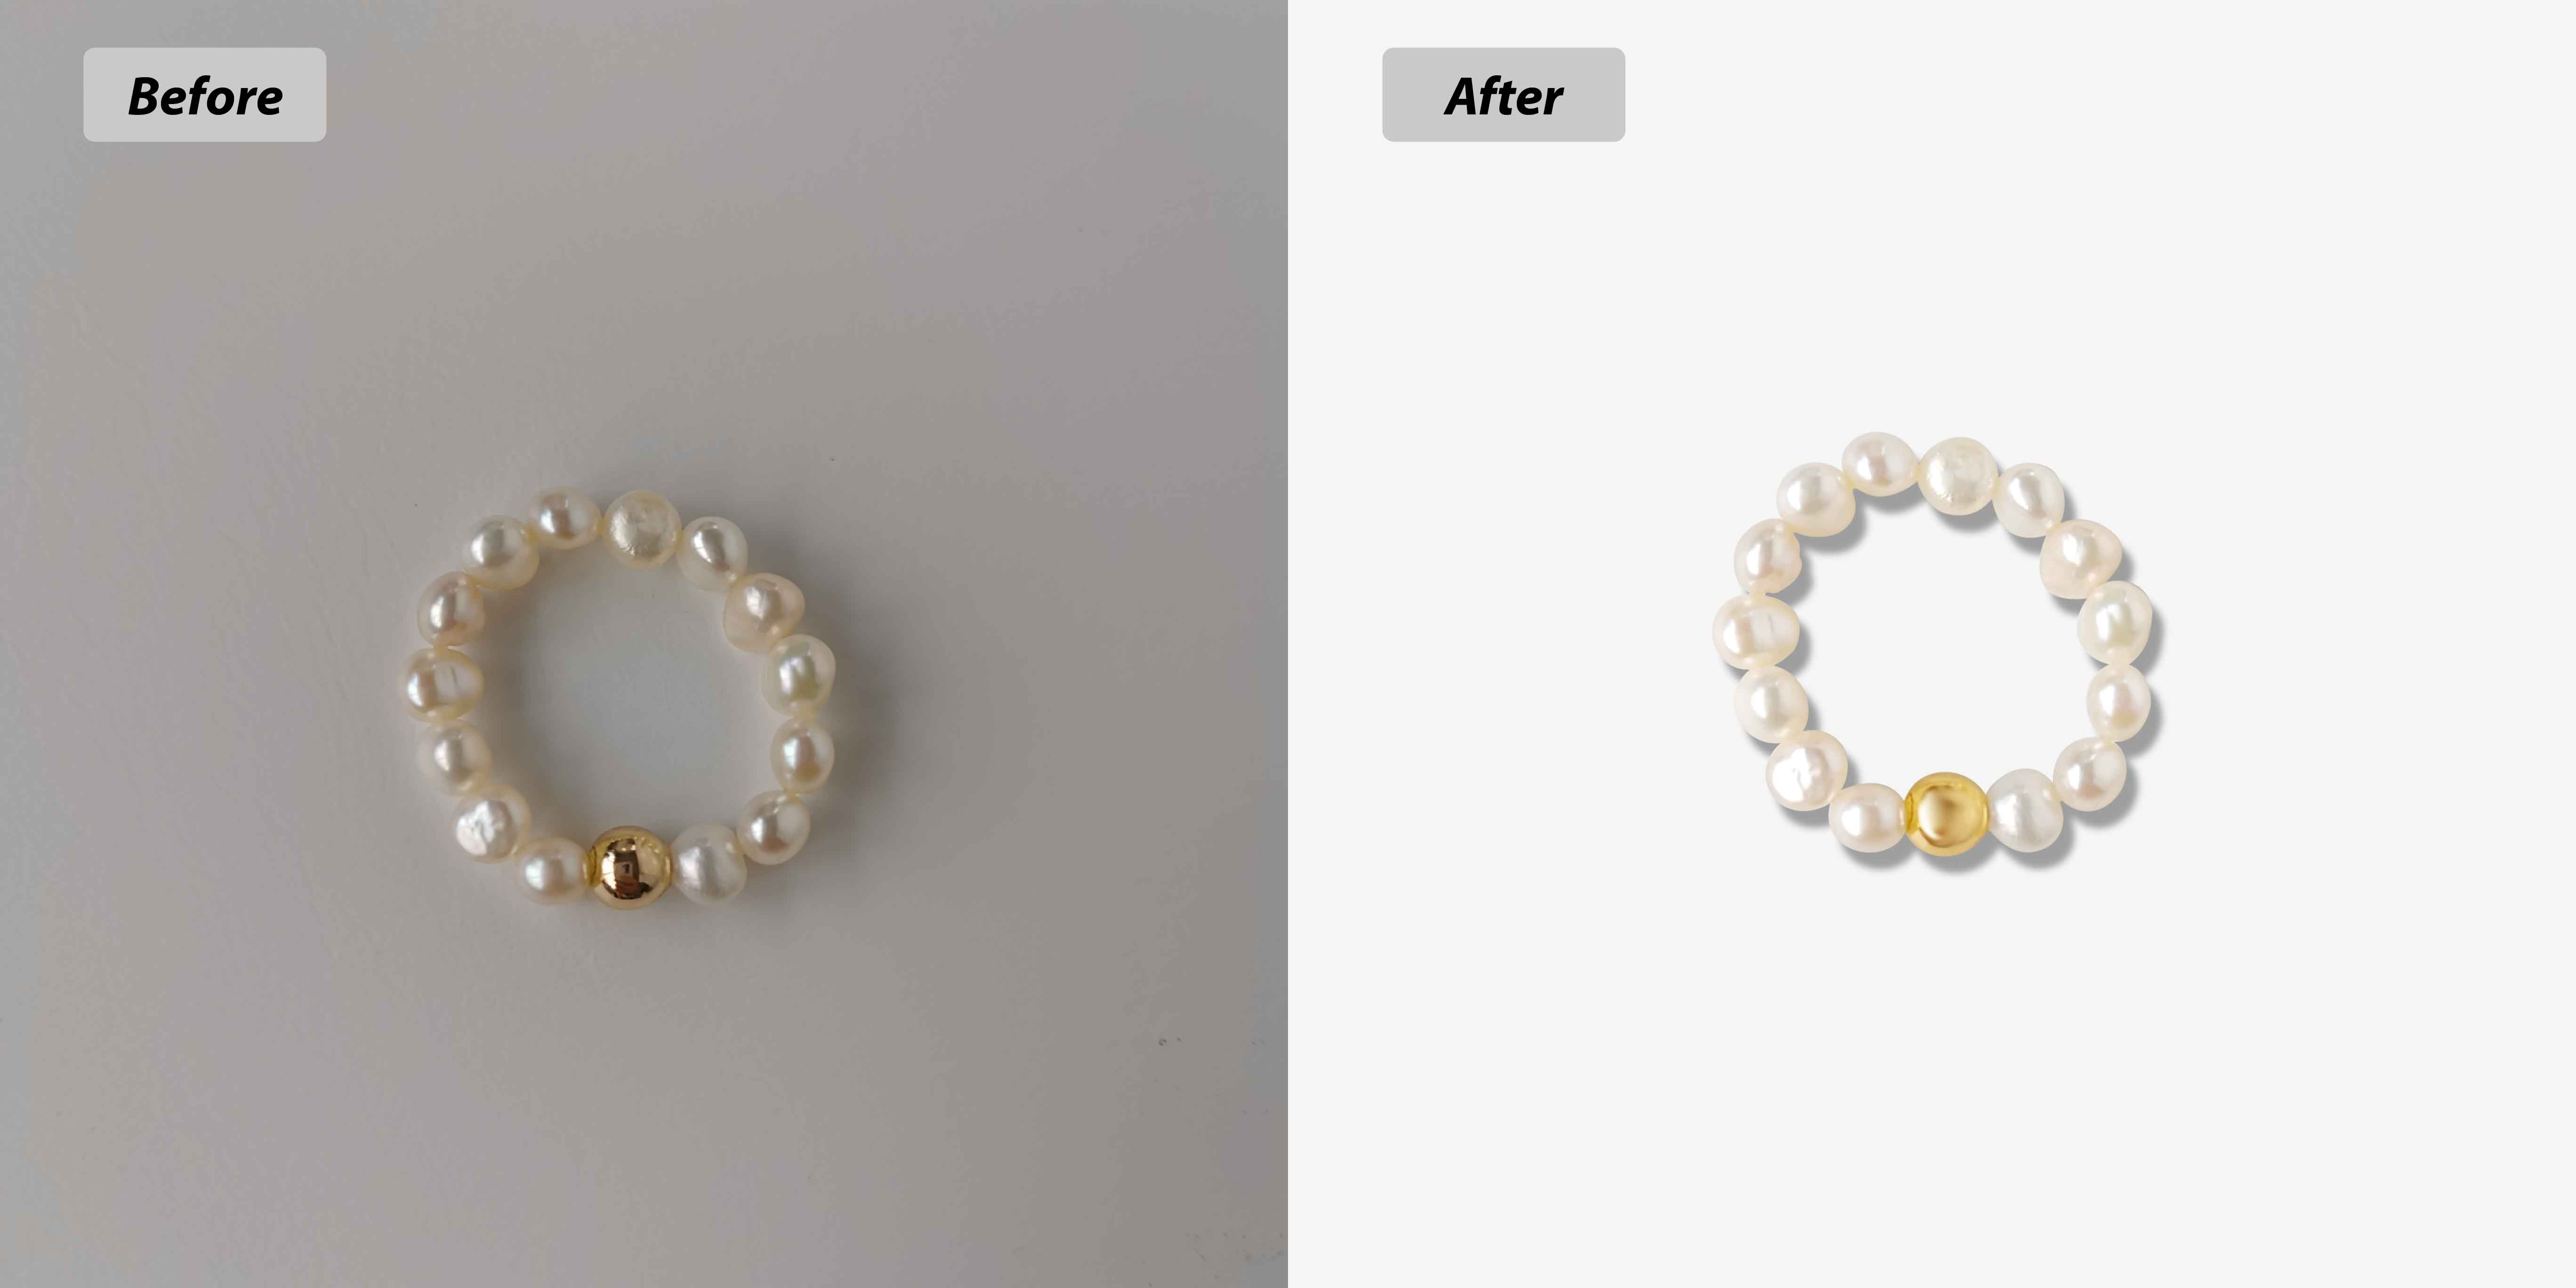 Clipping Charm_Jewellery retouch 0947